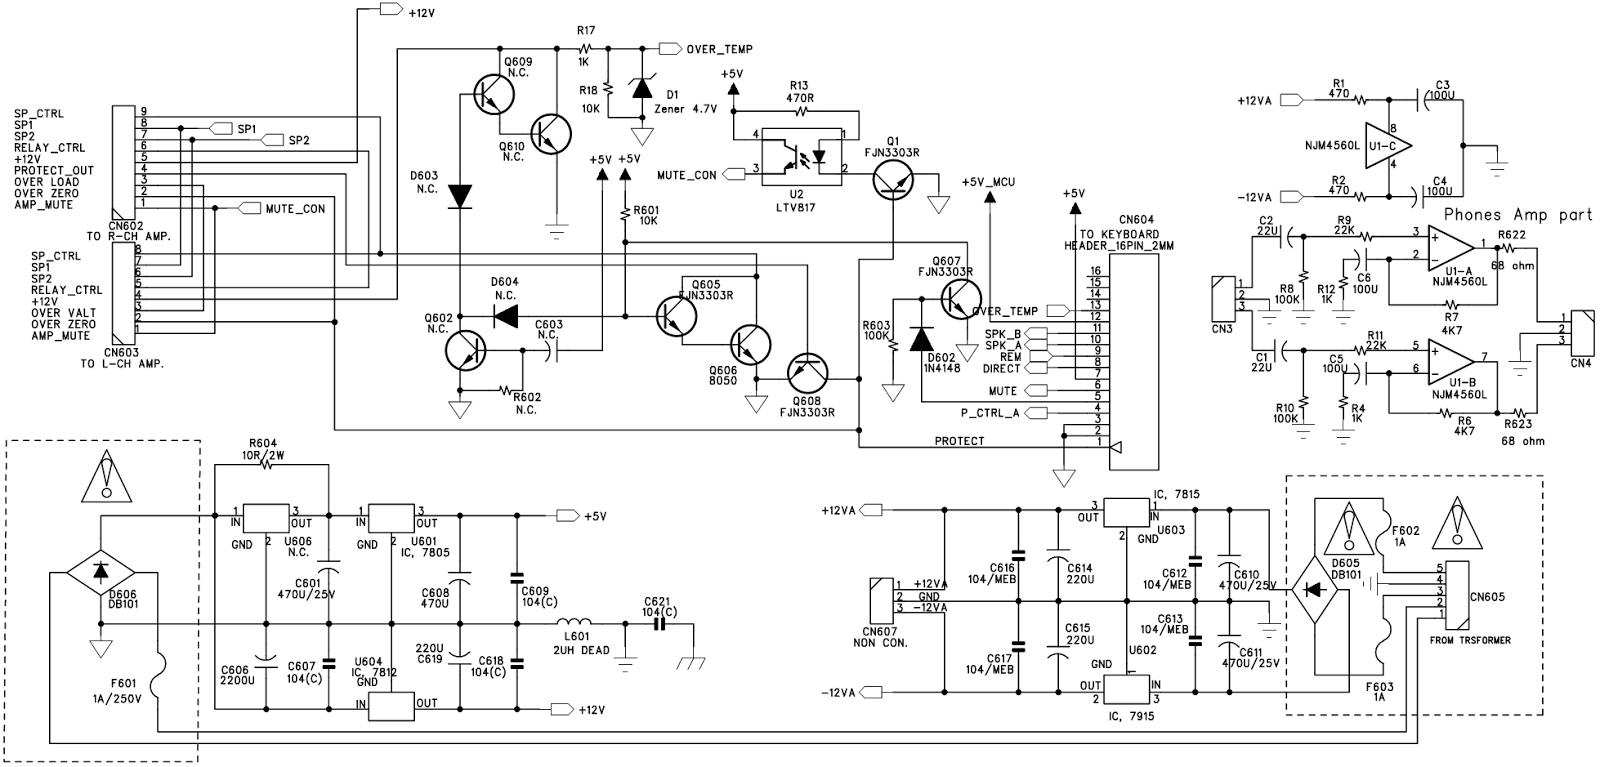 Wiring Diagram For A Technics Equalizer, Wiring, Get Free